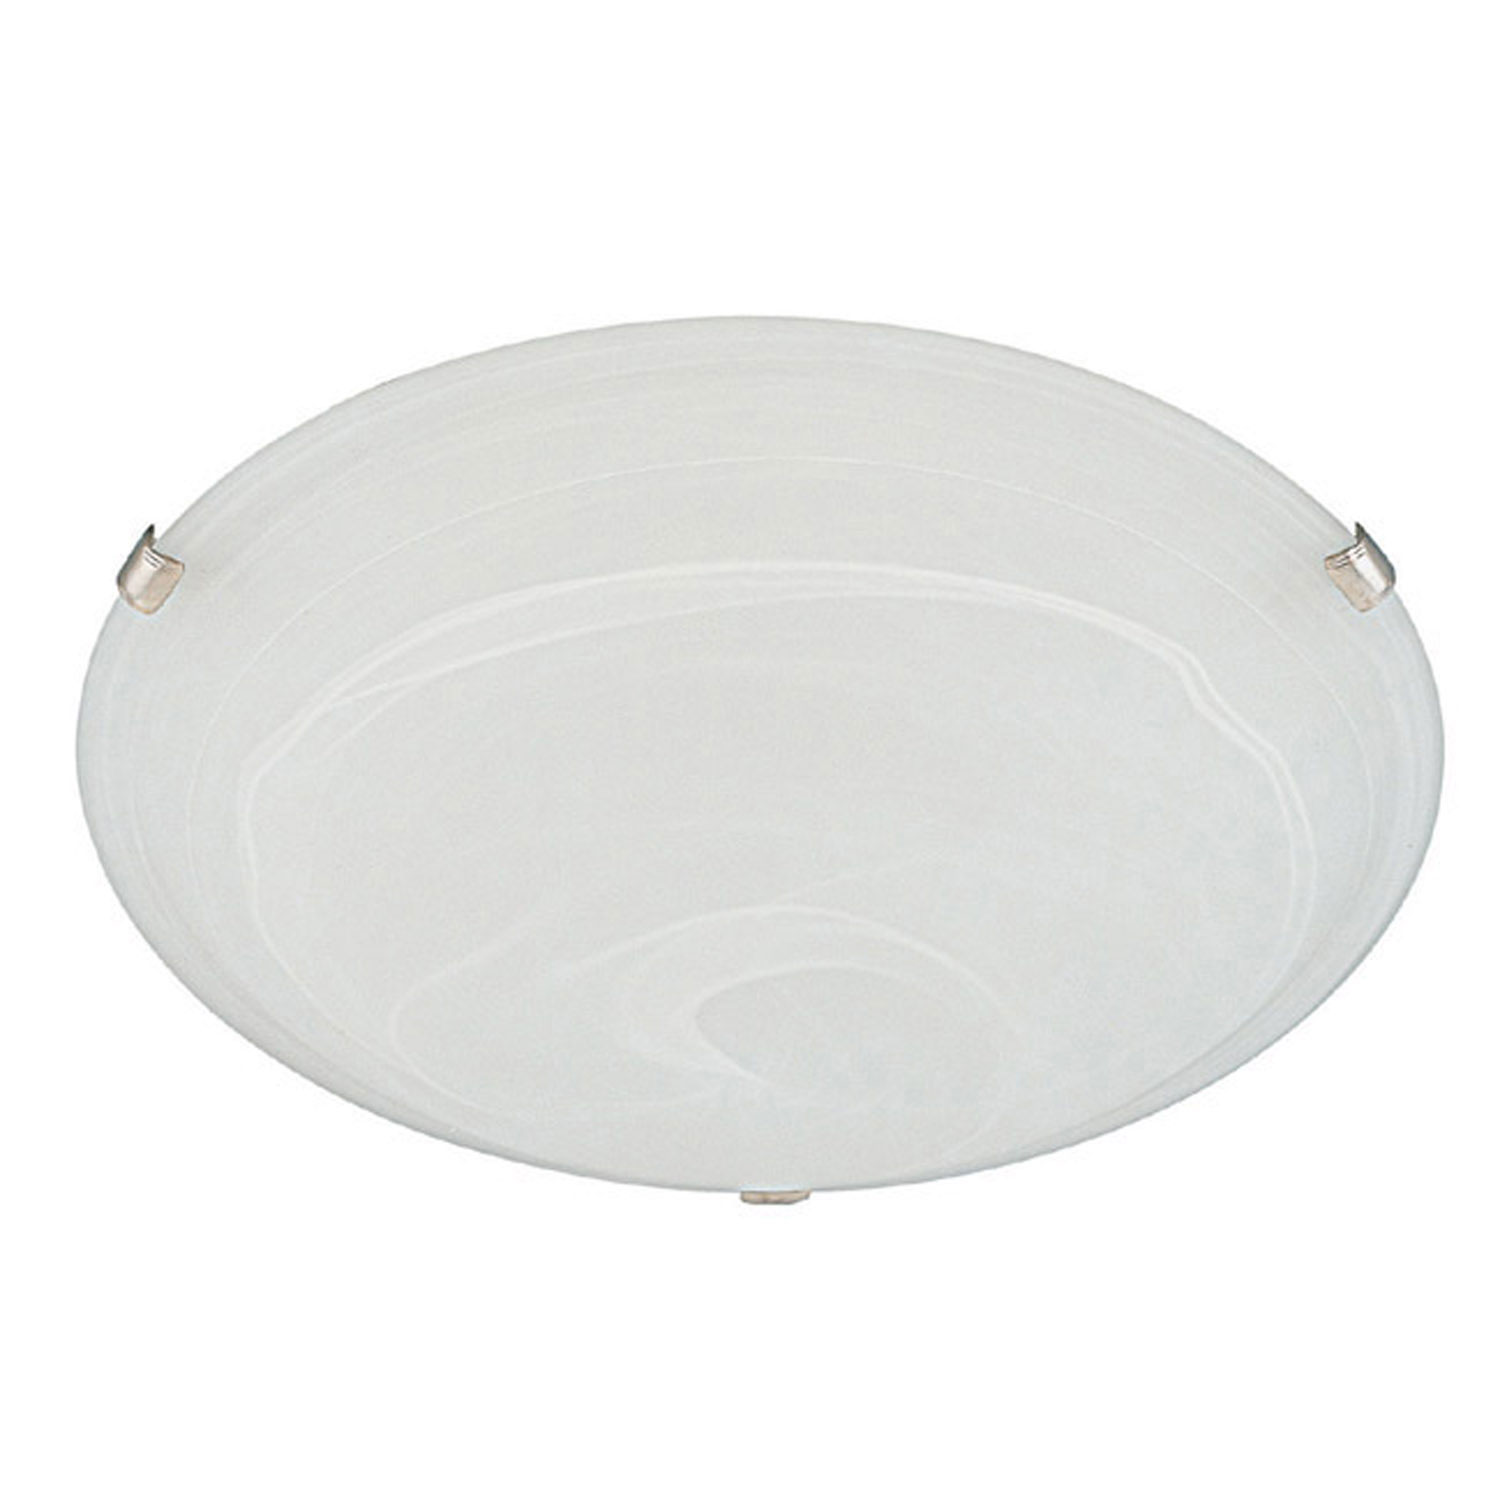 Four Light Ceiling Fixture With Mbz, Mn & Mw Clips